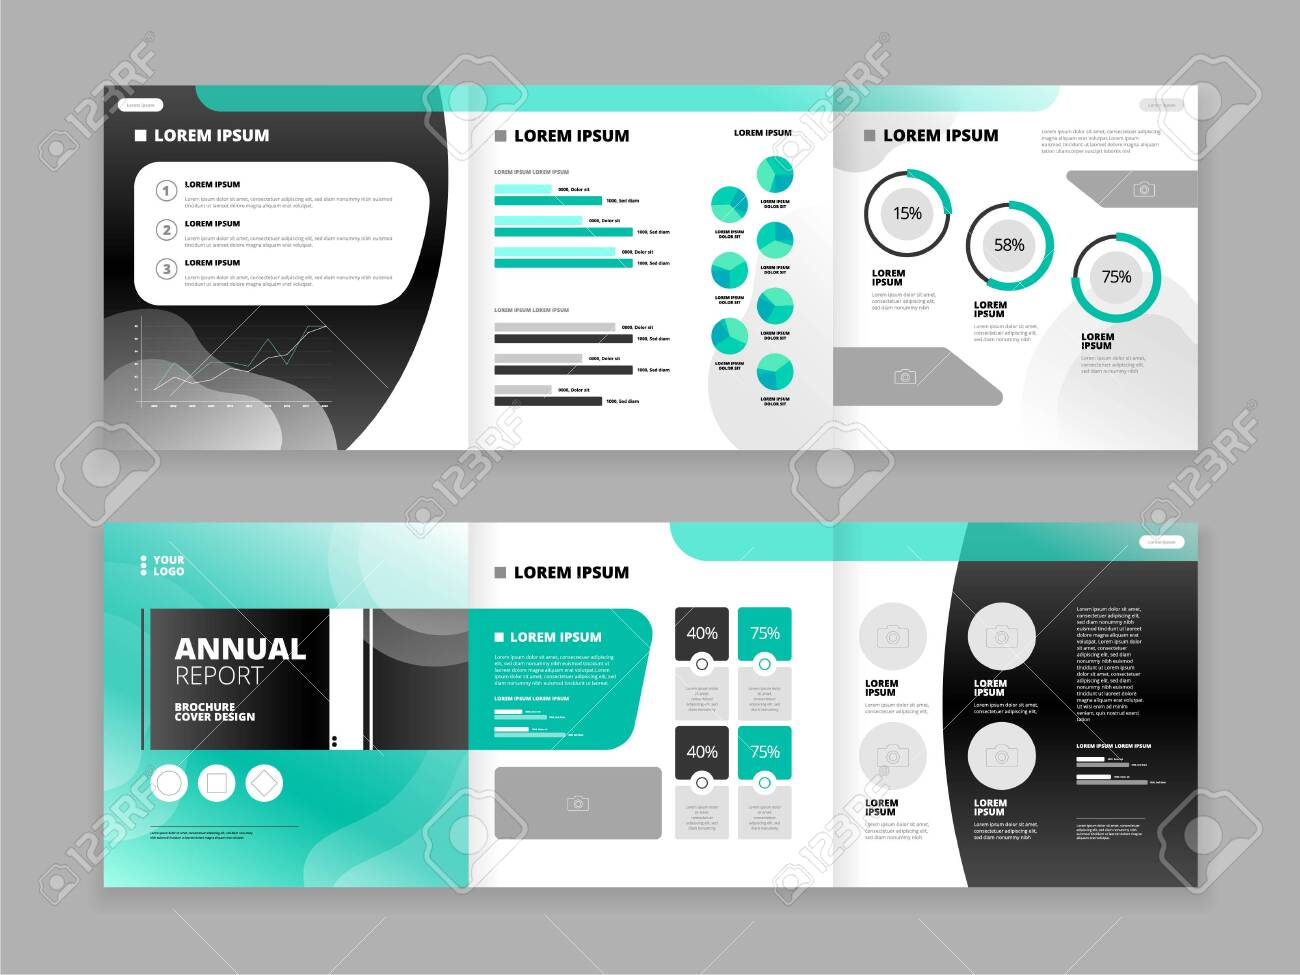 Trifold brochure cover design set for business reports with abstract pattern isolated on grey background flat vector illustration - 149909551